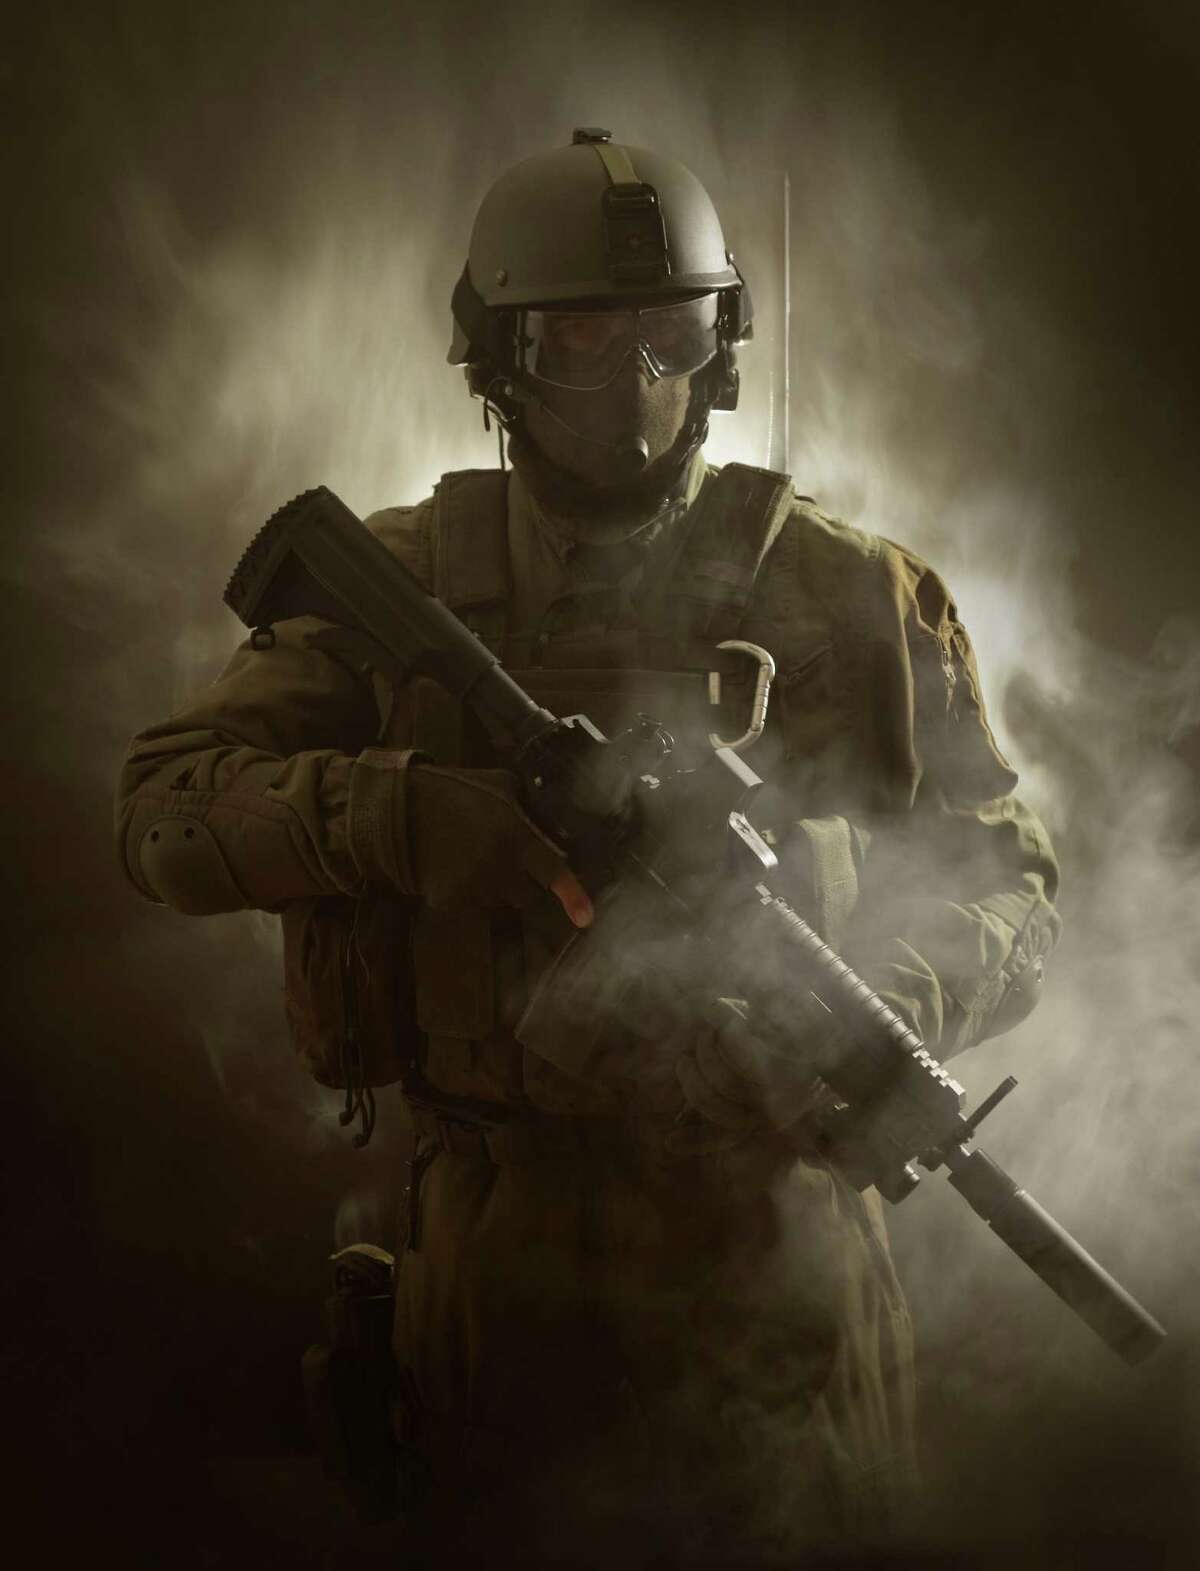 The United States Special Operations Command, or SOCOM, is the unified command and control for the various special operations units of the U.S. Army, Navy, Air Force and Marine Corps. These are some of the units operating under SOCOM, and a couple others that were just too cool to not have included.